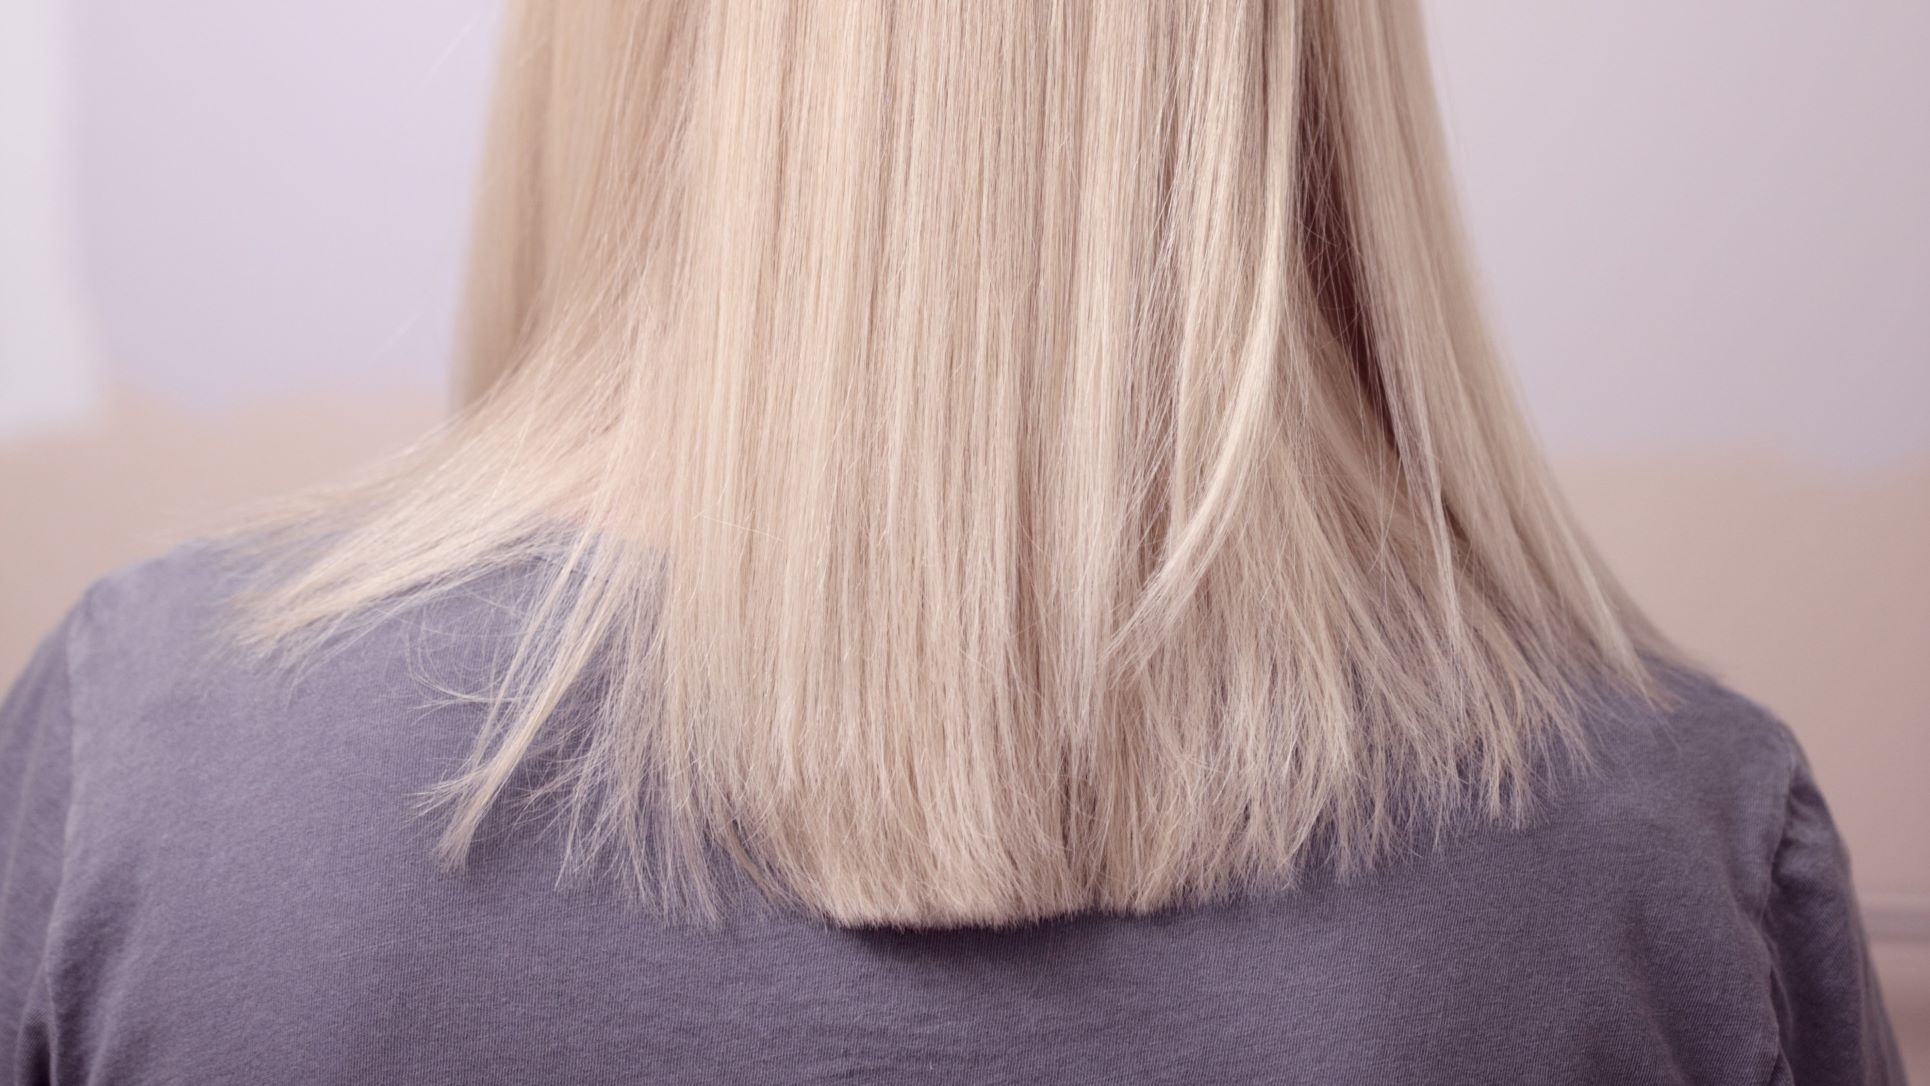 bleached hair example